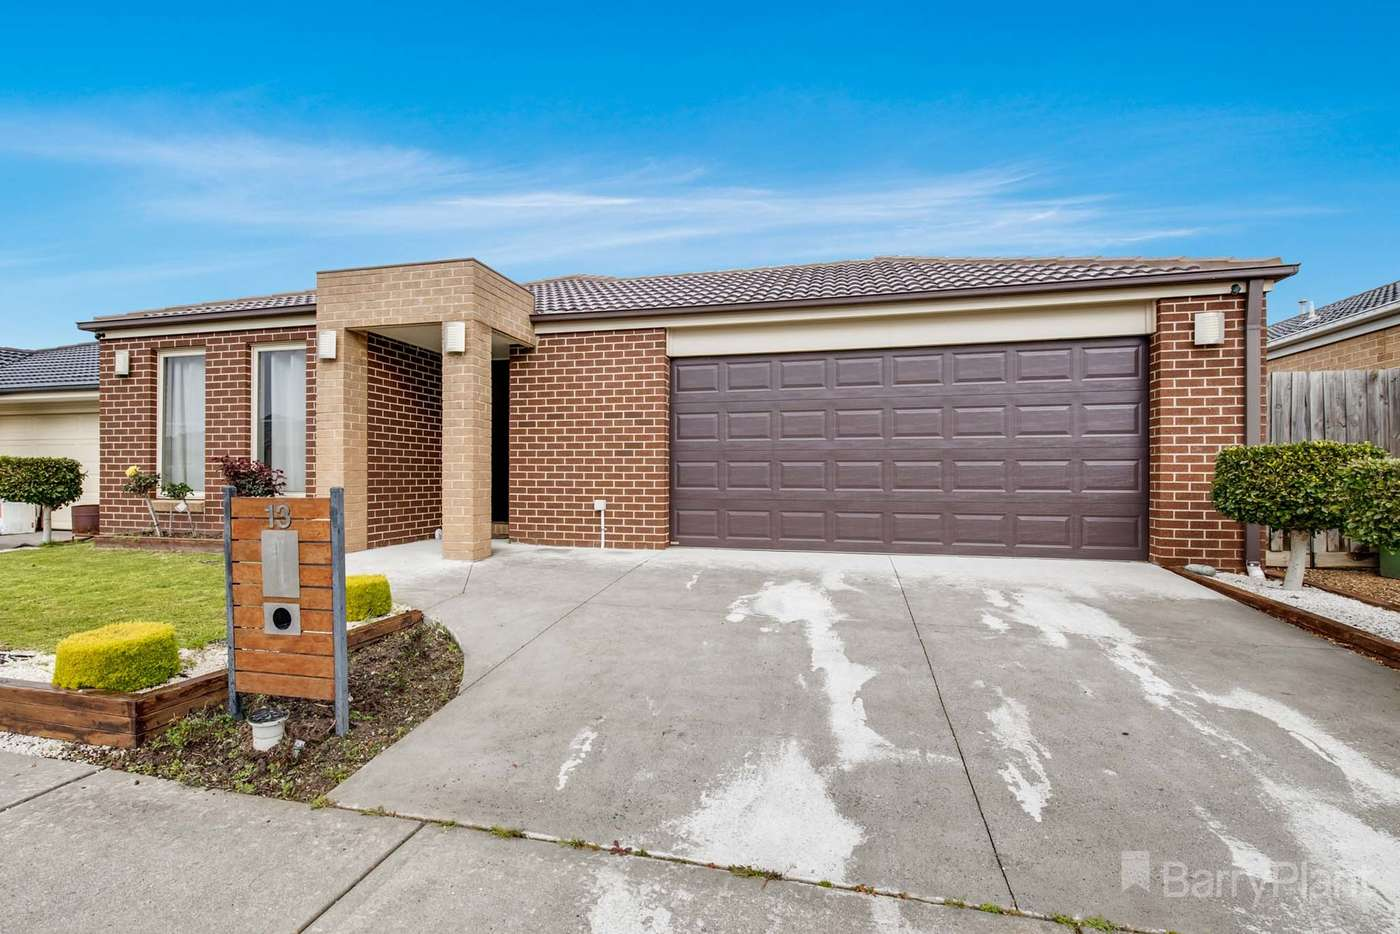 Main view of Homely house listing, 13 Currawong Crescent, Pakenham VIC 3810